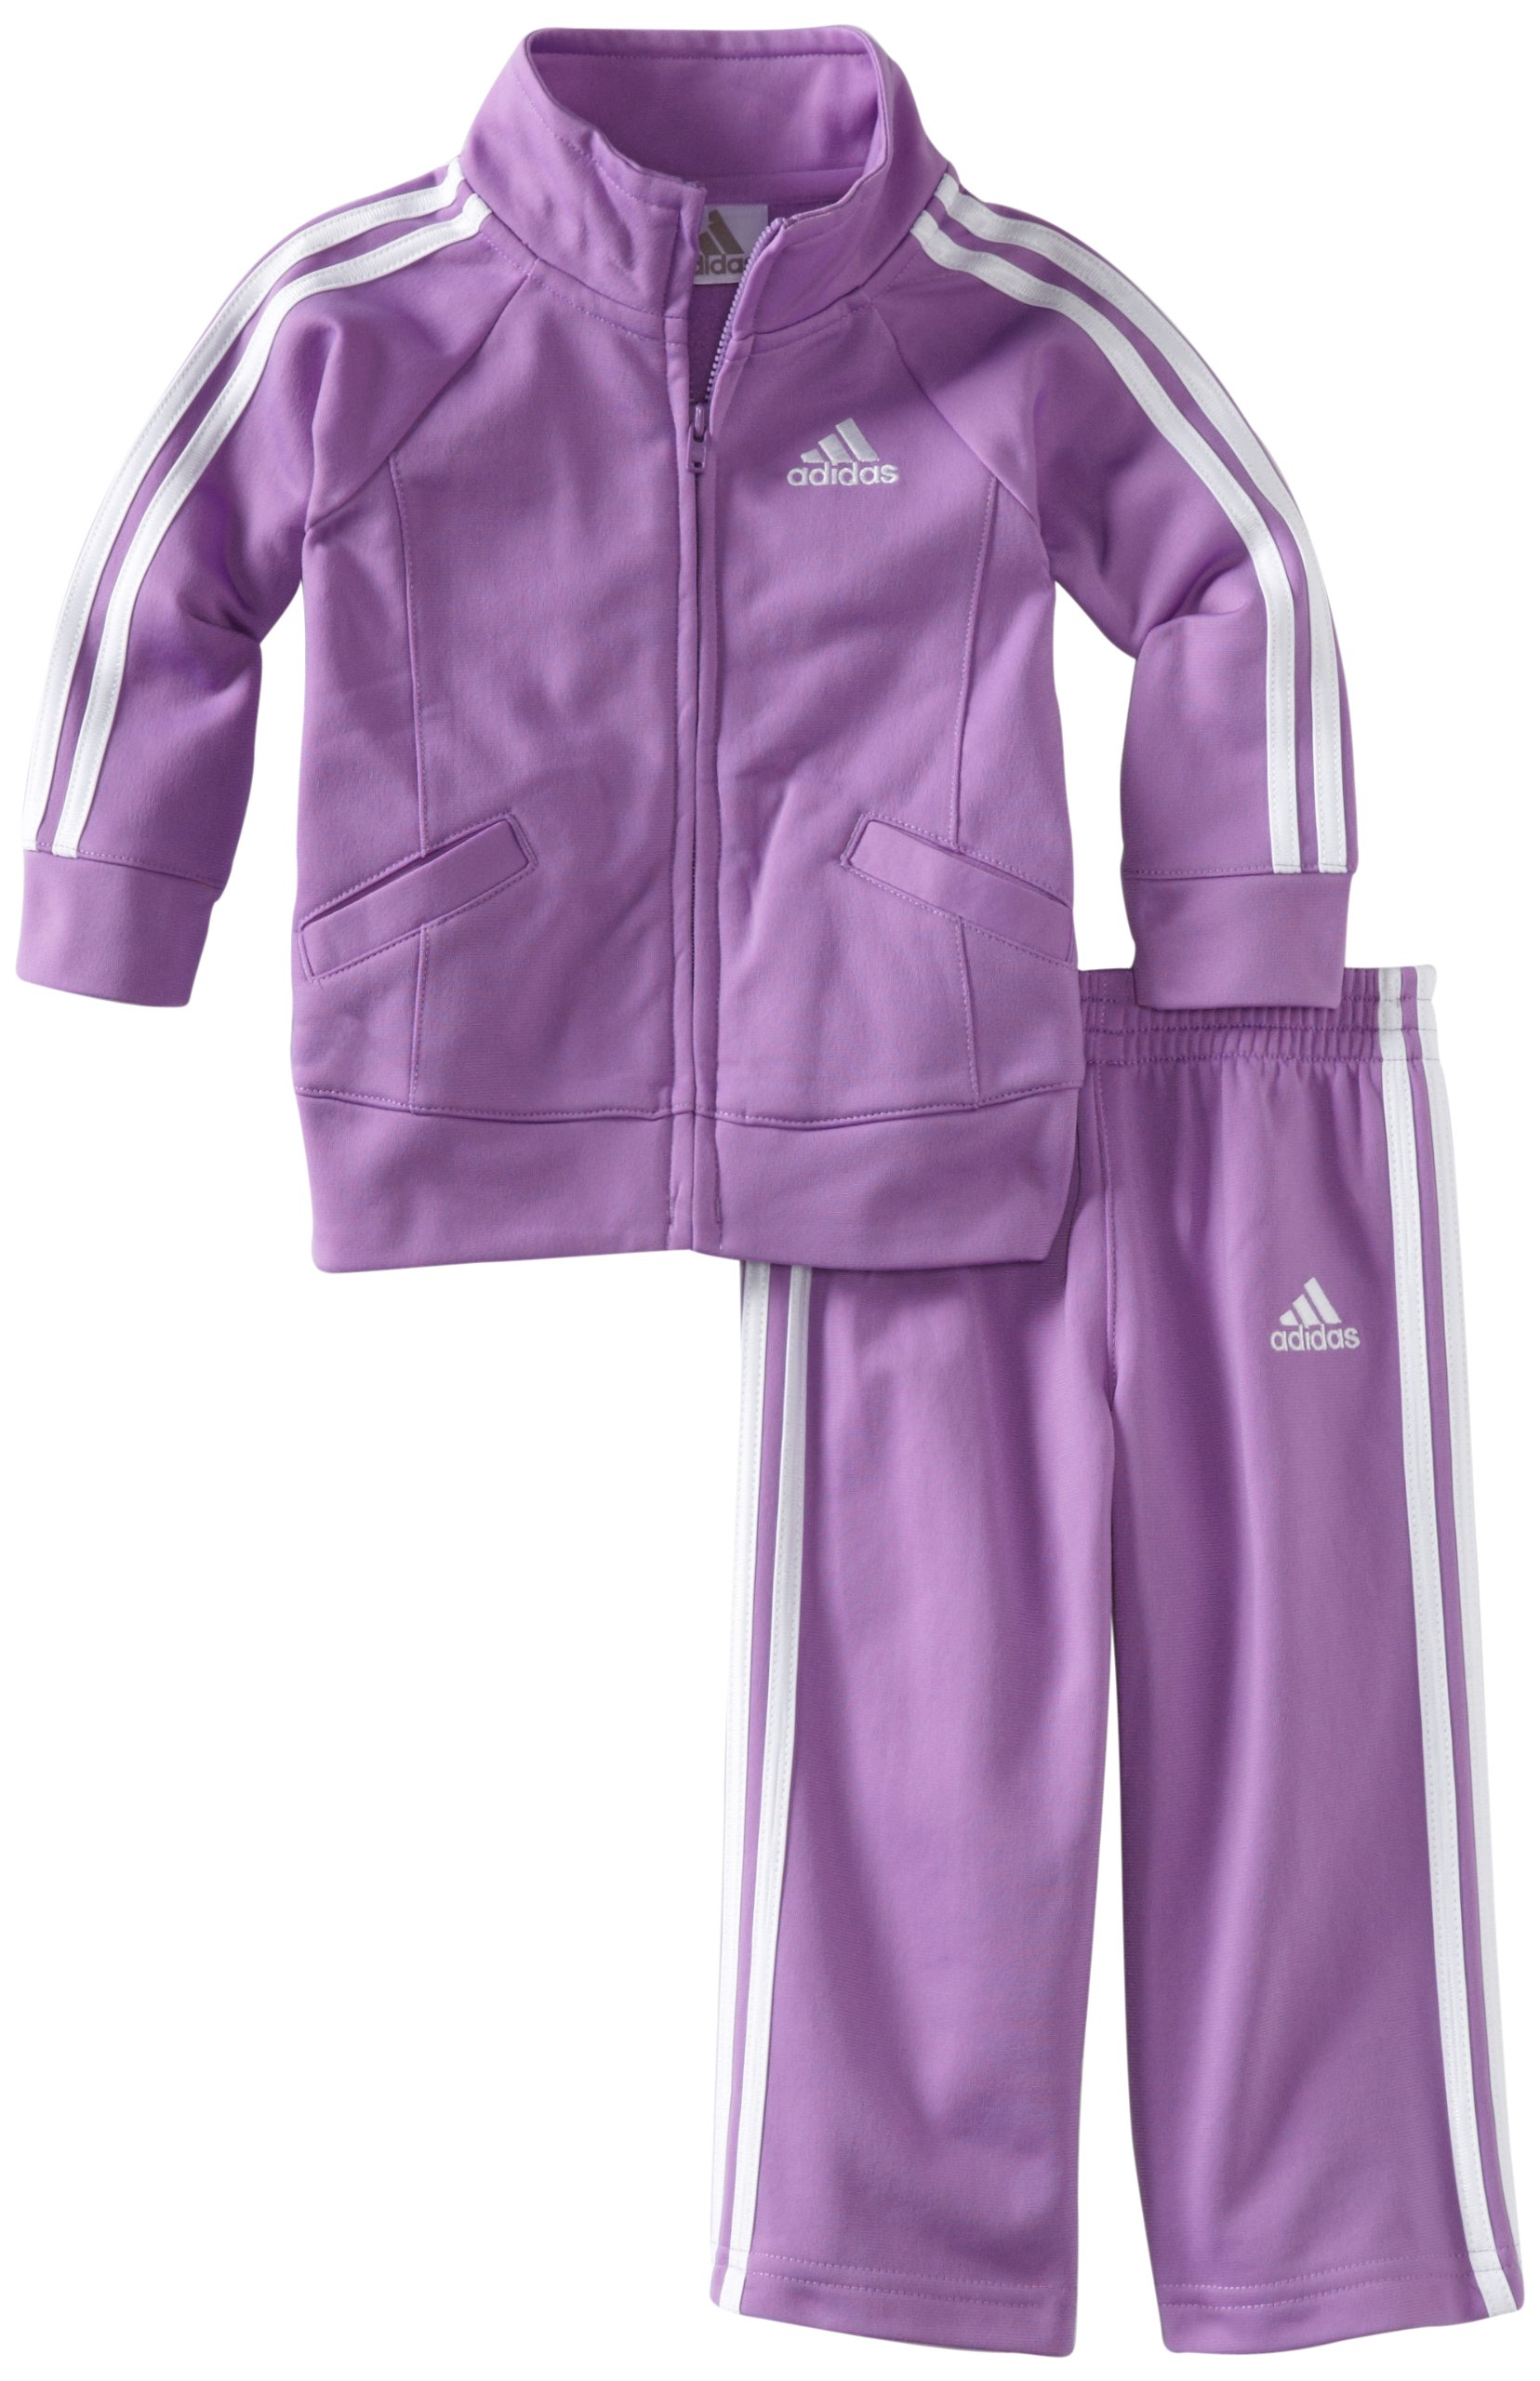 adidas Baby Girls' Tricot Zip Jacket and Pant Set, Purple Basic, 12 Months